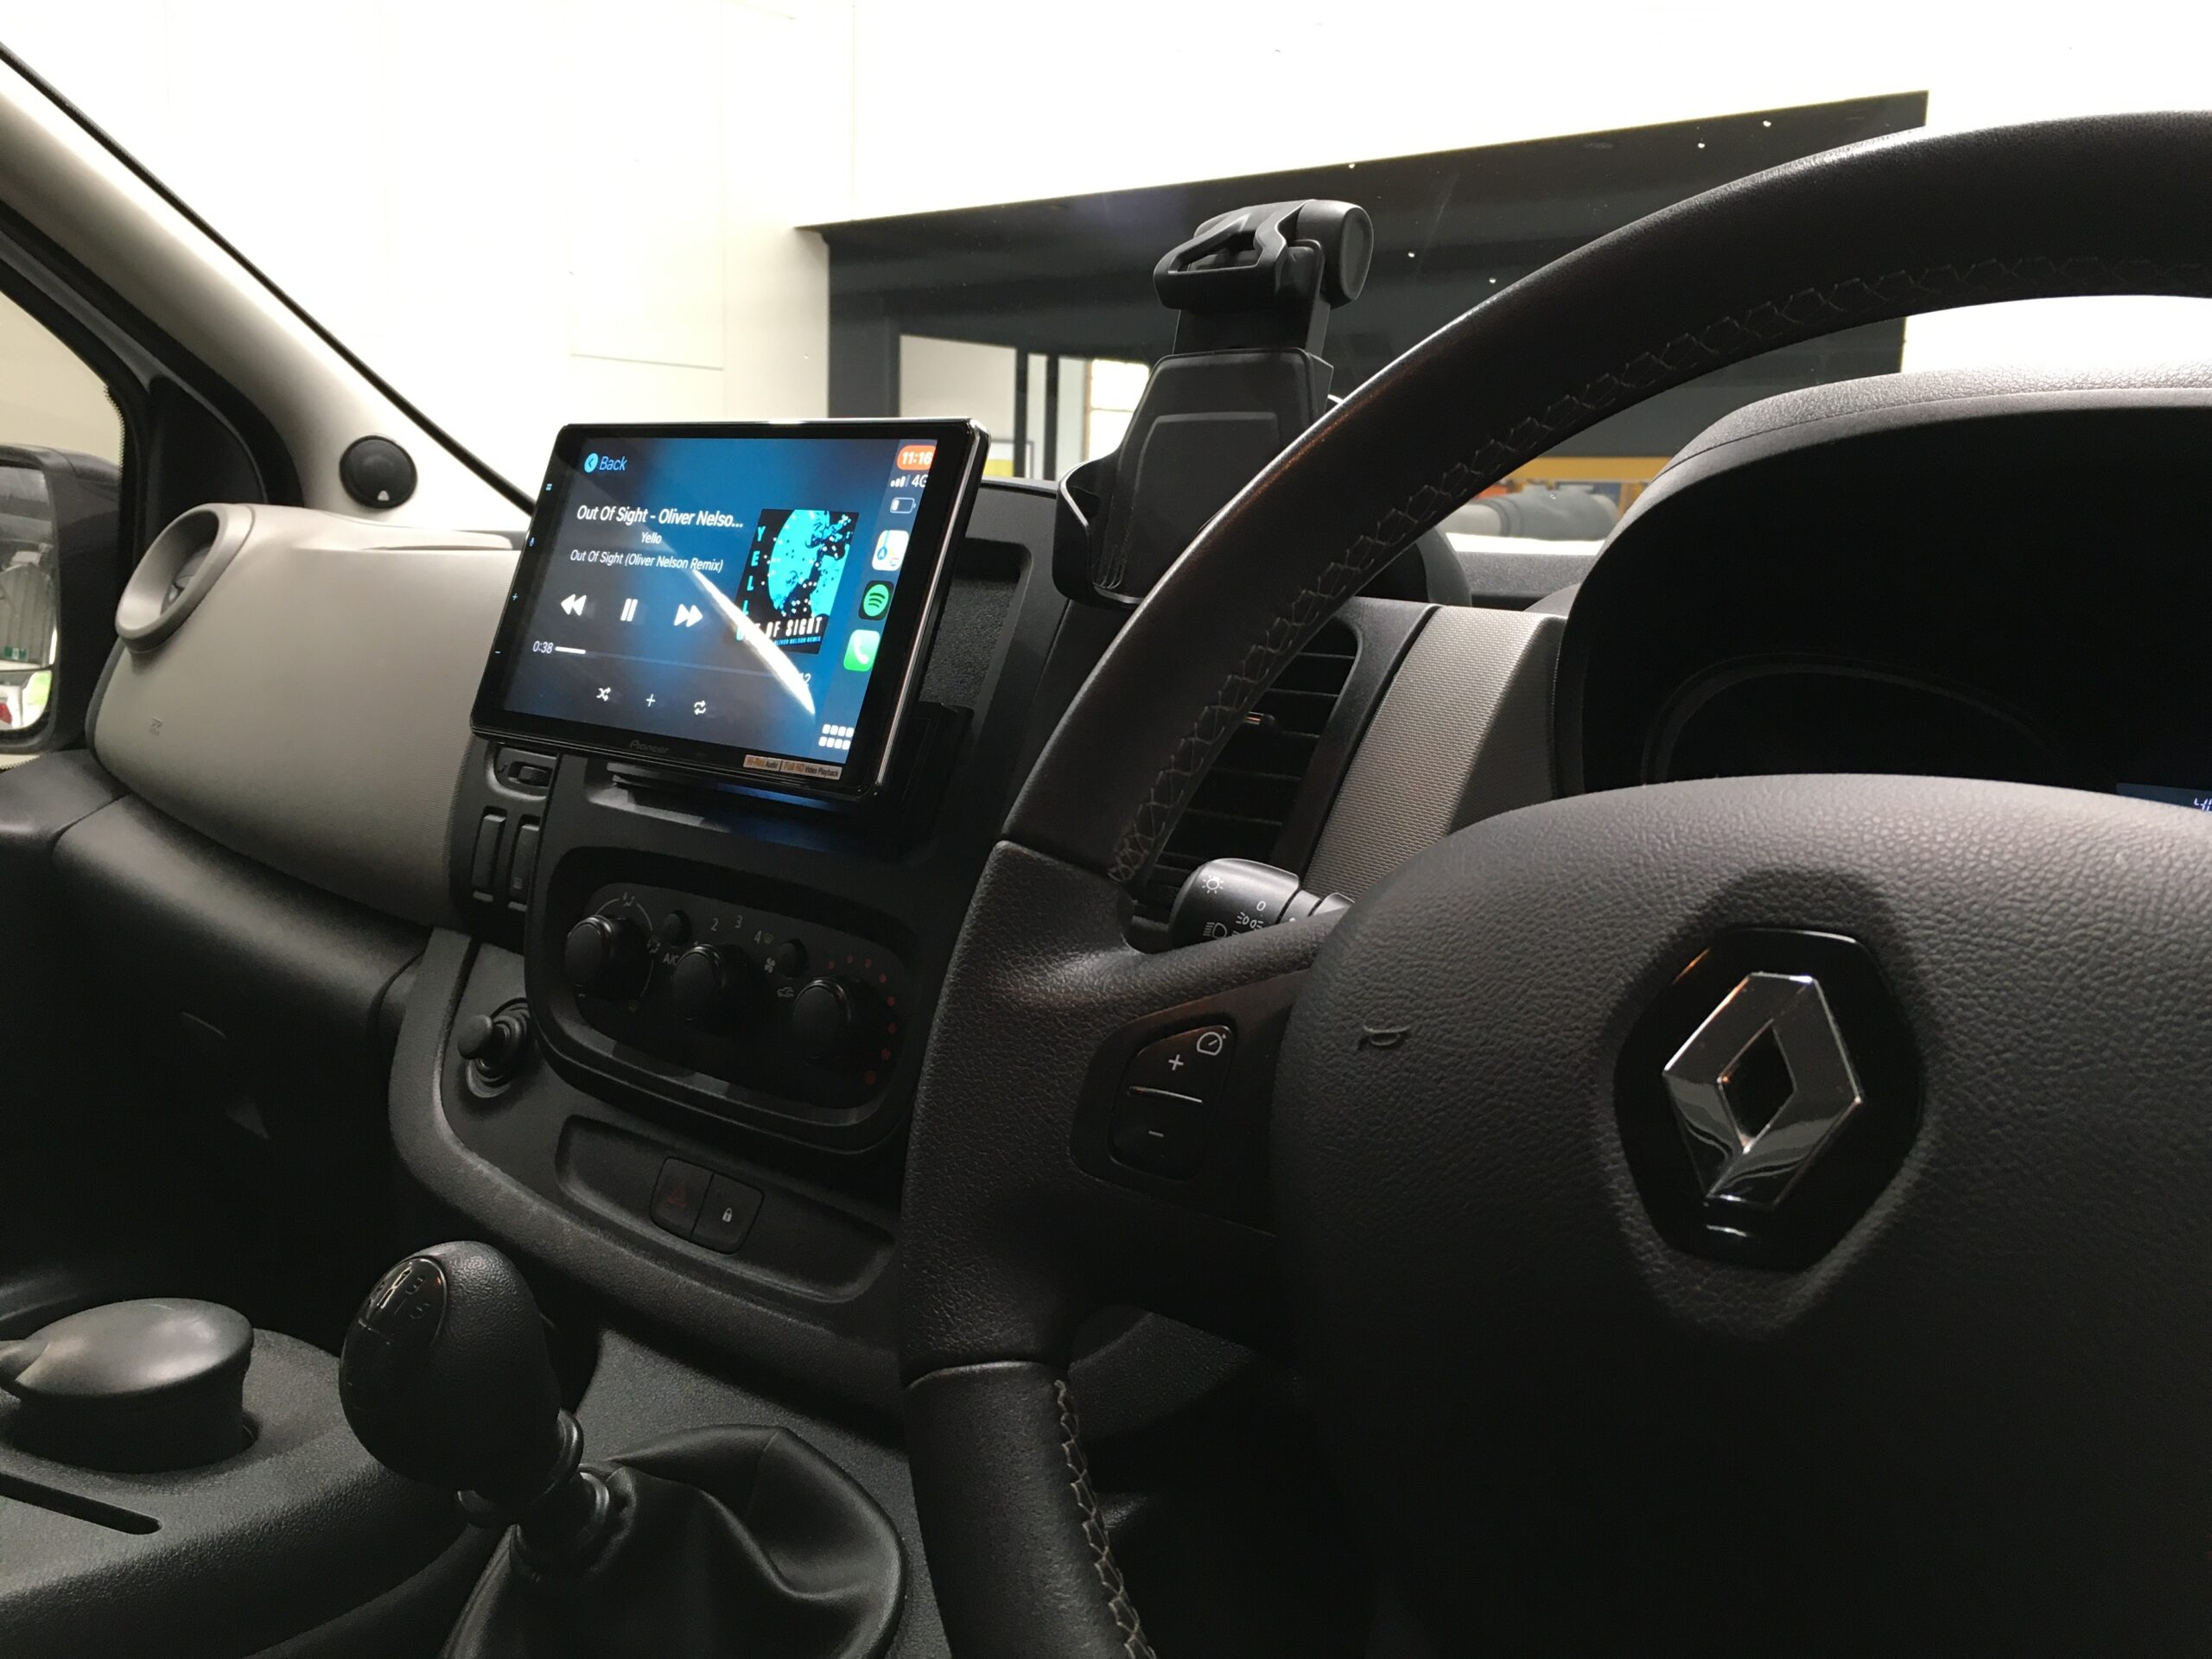 pioneer dmv-zf9350 in renault trafic